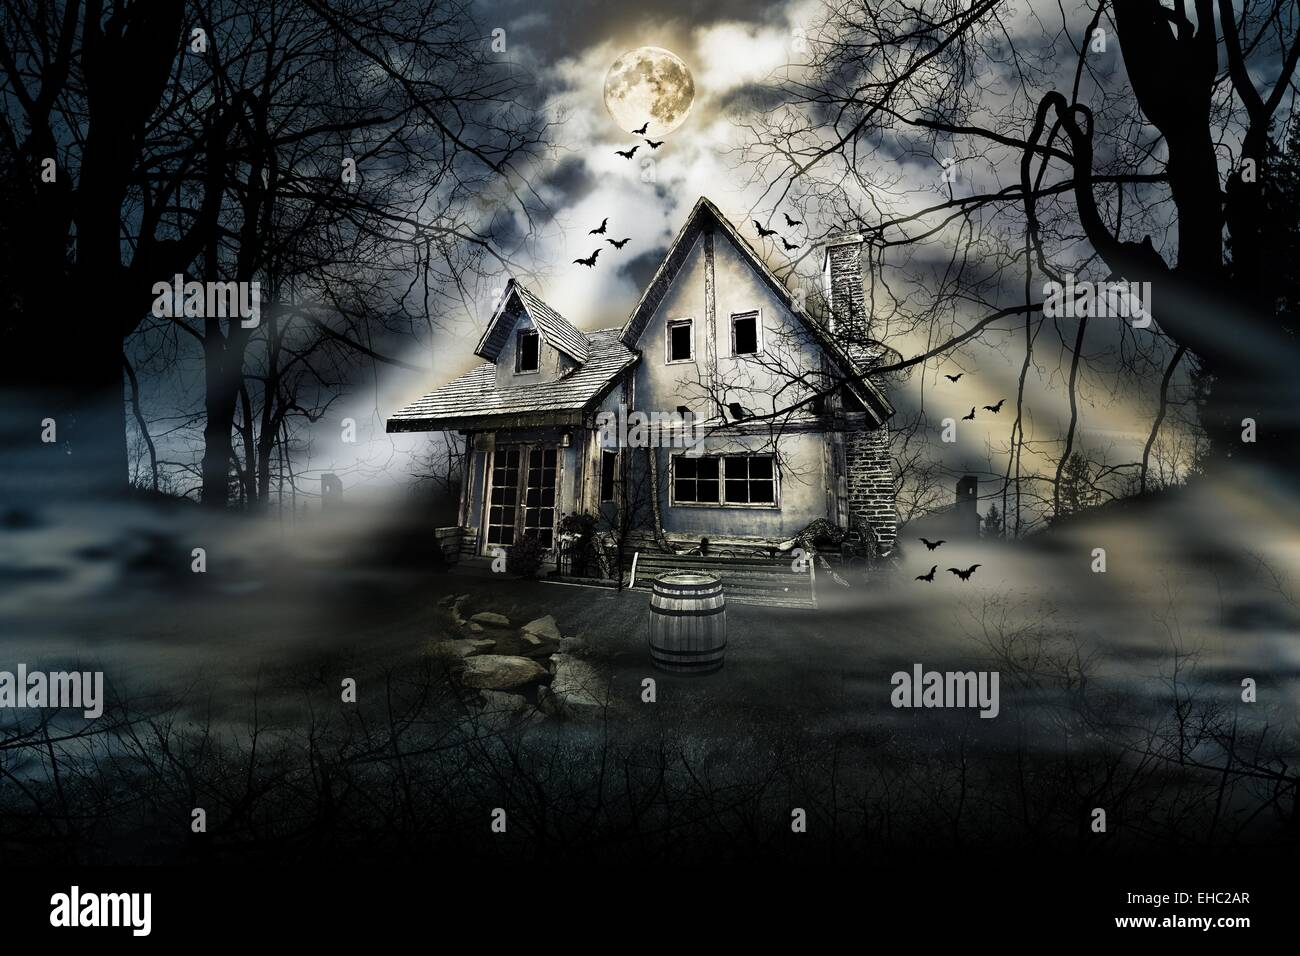 Haunted House con dark inquietante atmosfera horror Immagini Stock